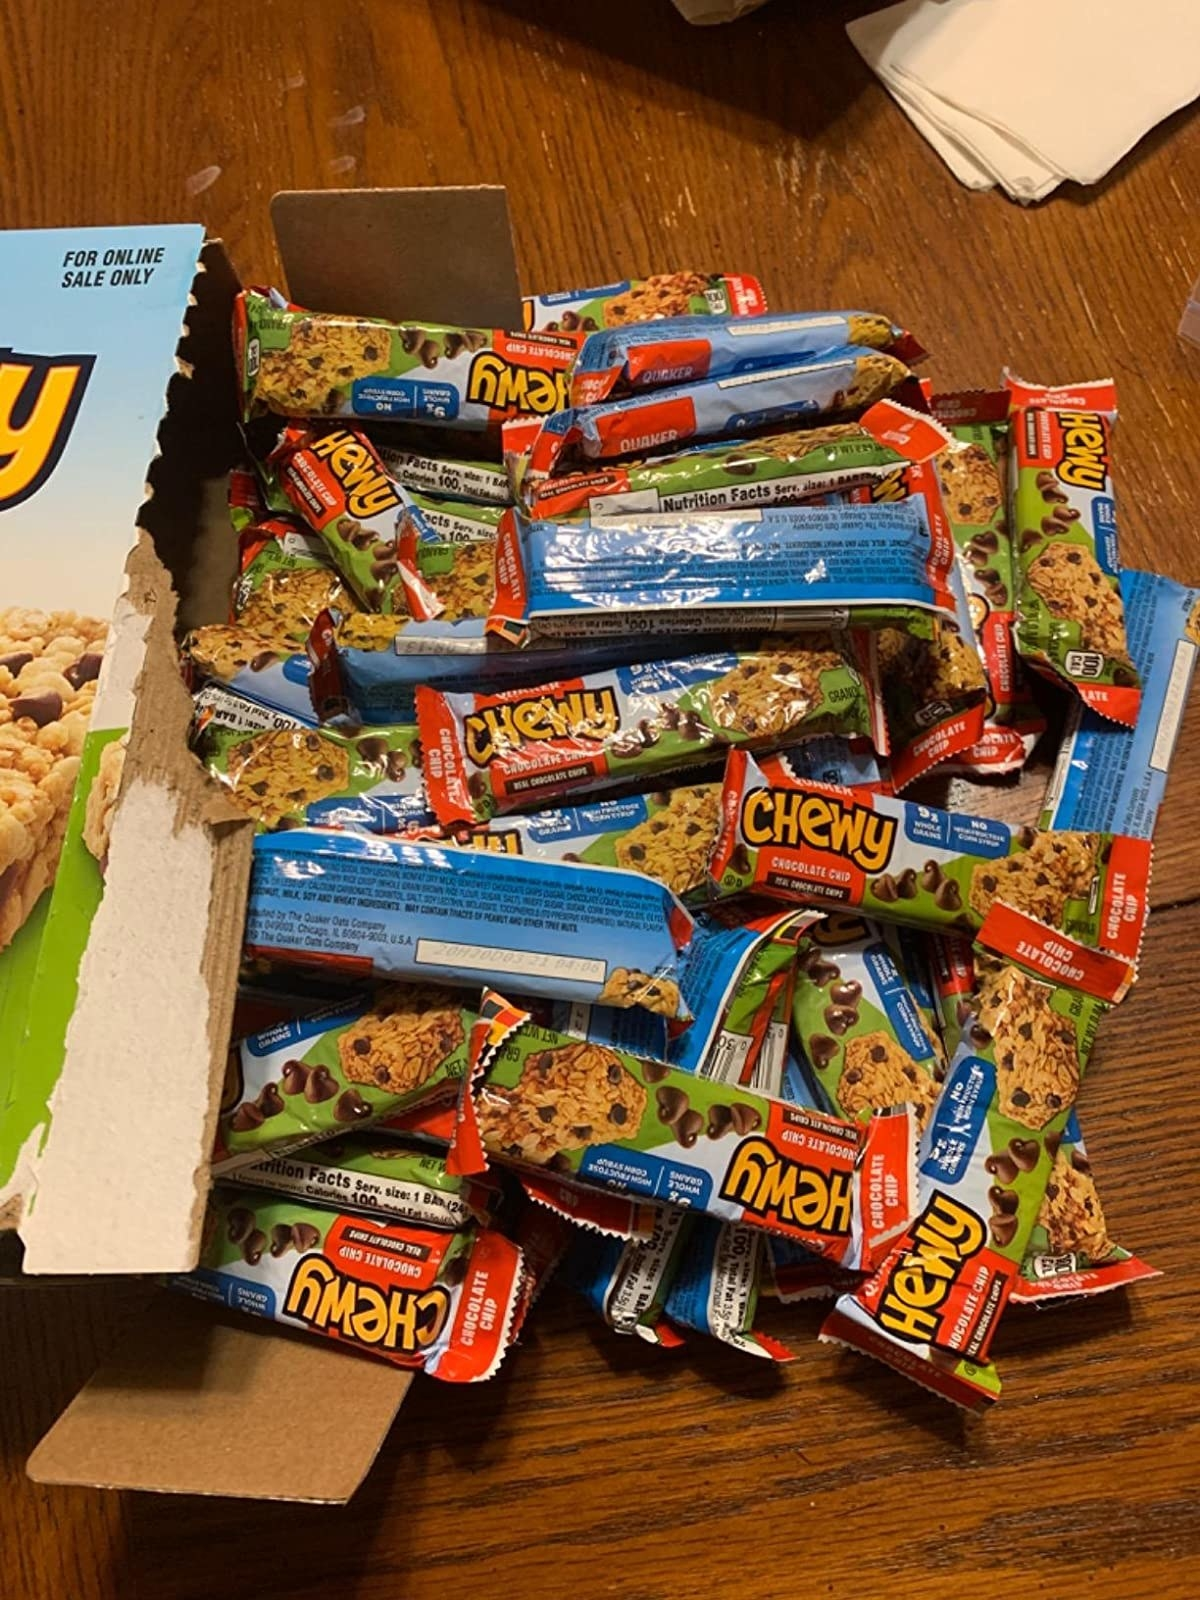 the granola bars spilling out of the box